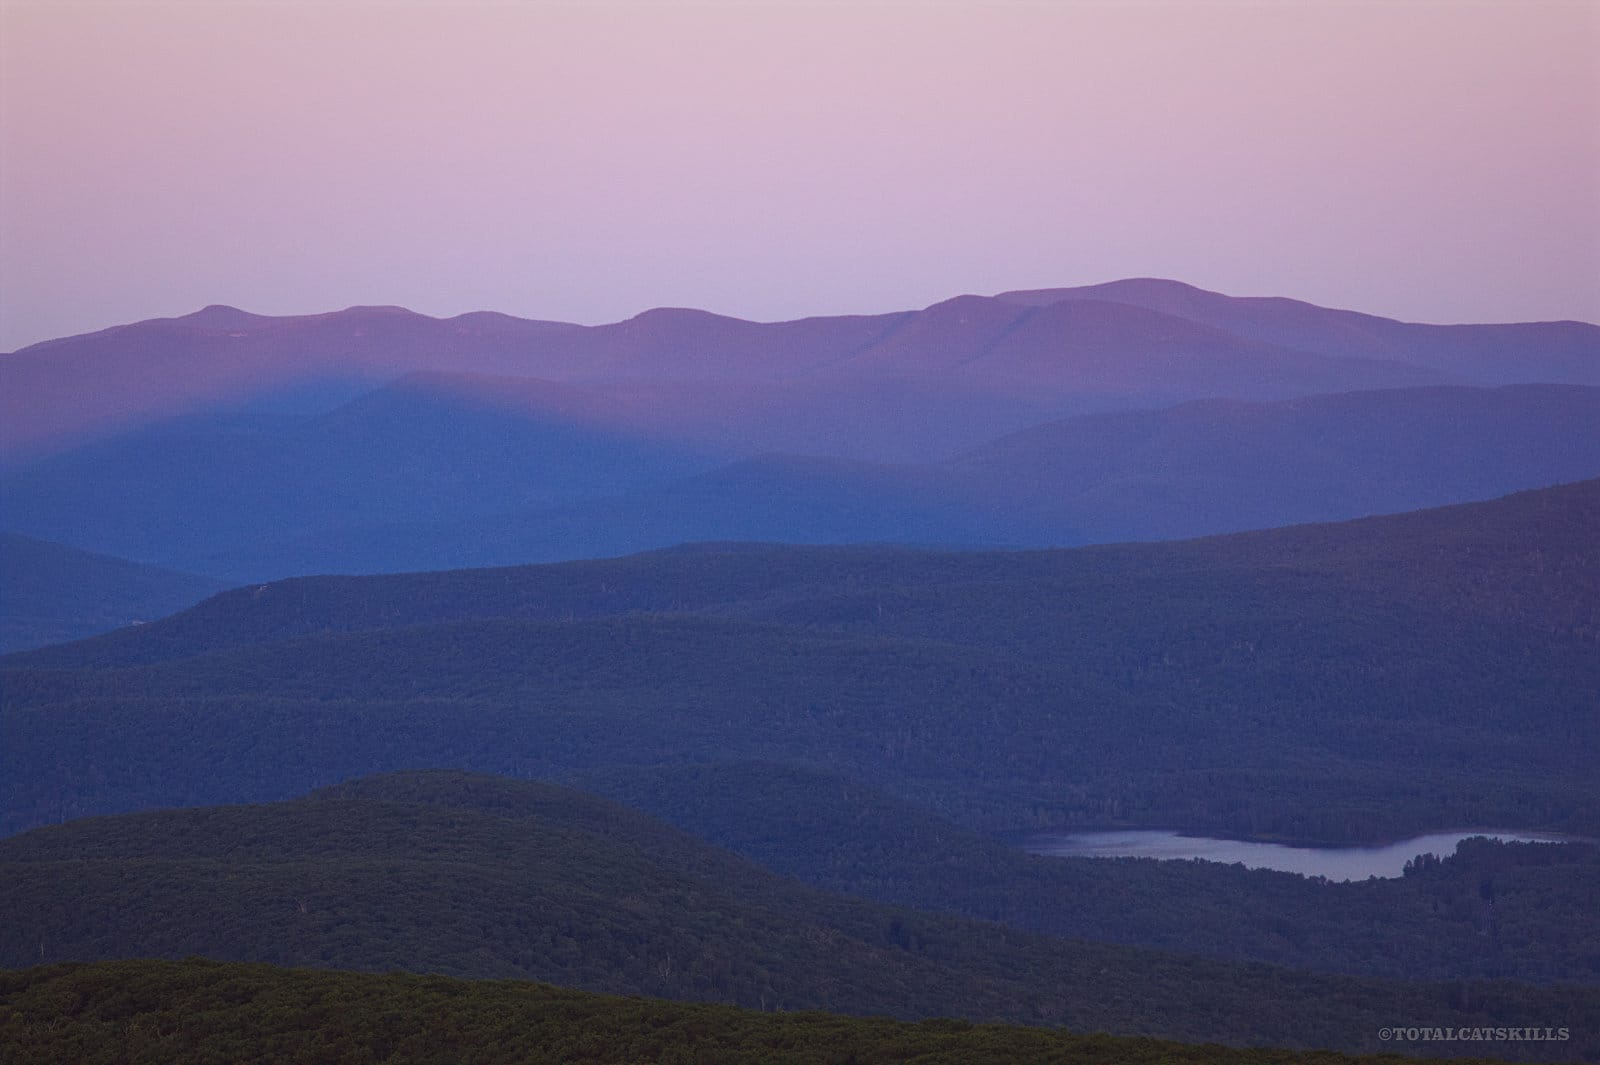 early morning light on mountain ranges